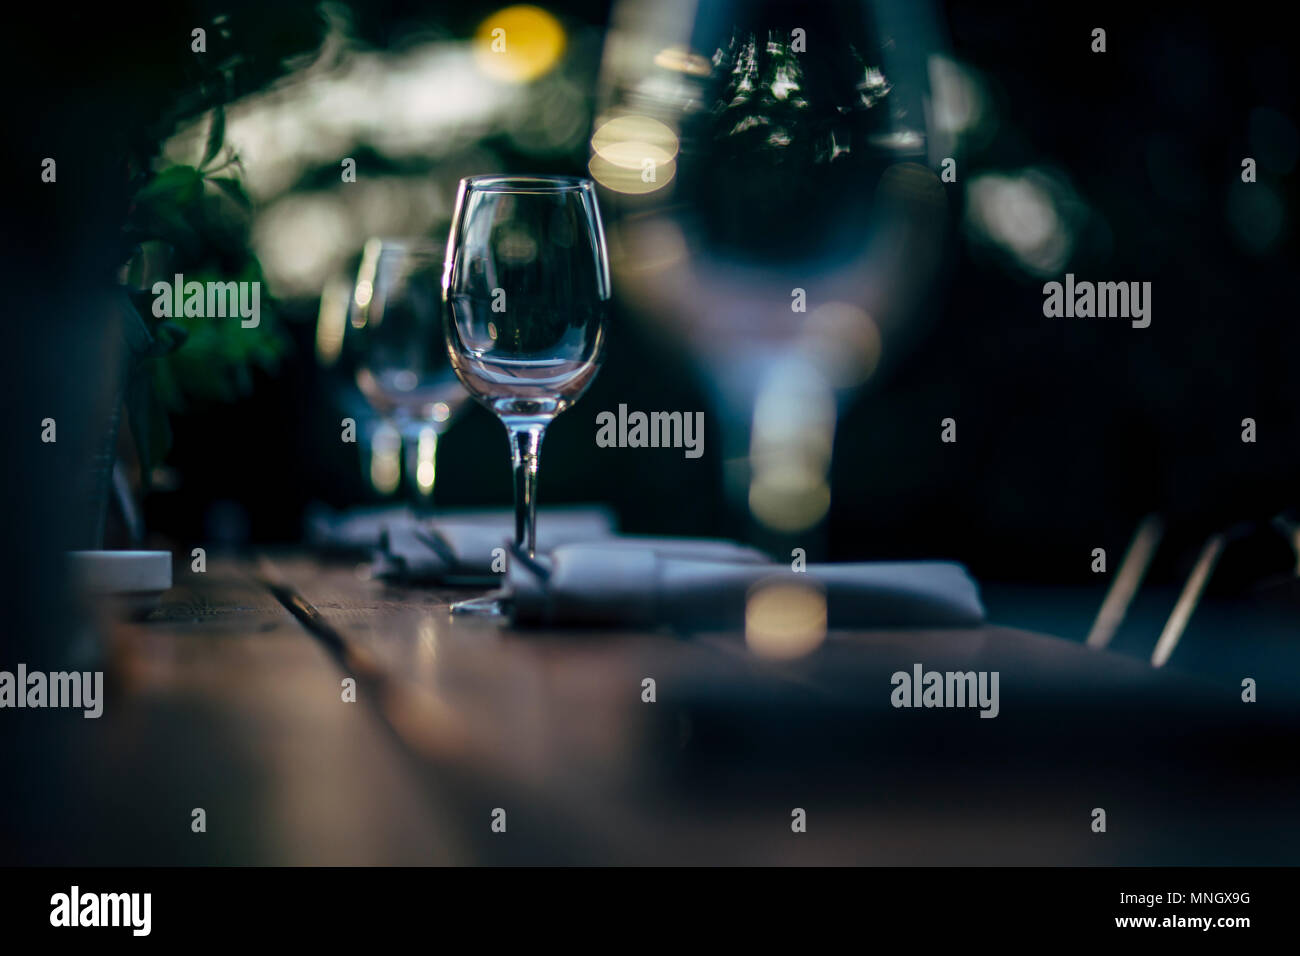 Luxury table settings for fine dining with and glassware, beautiful blurred  background. For events, weddings and other social events. - Stock Image